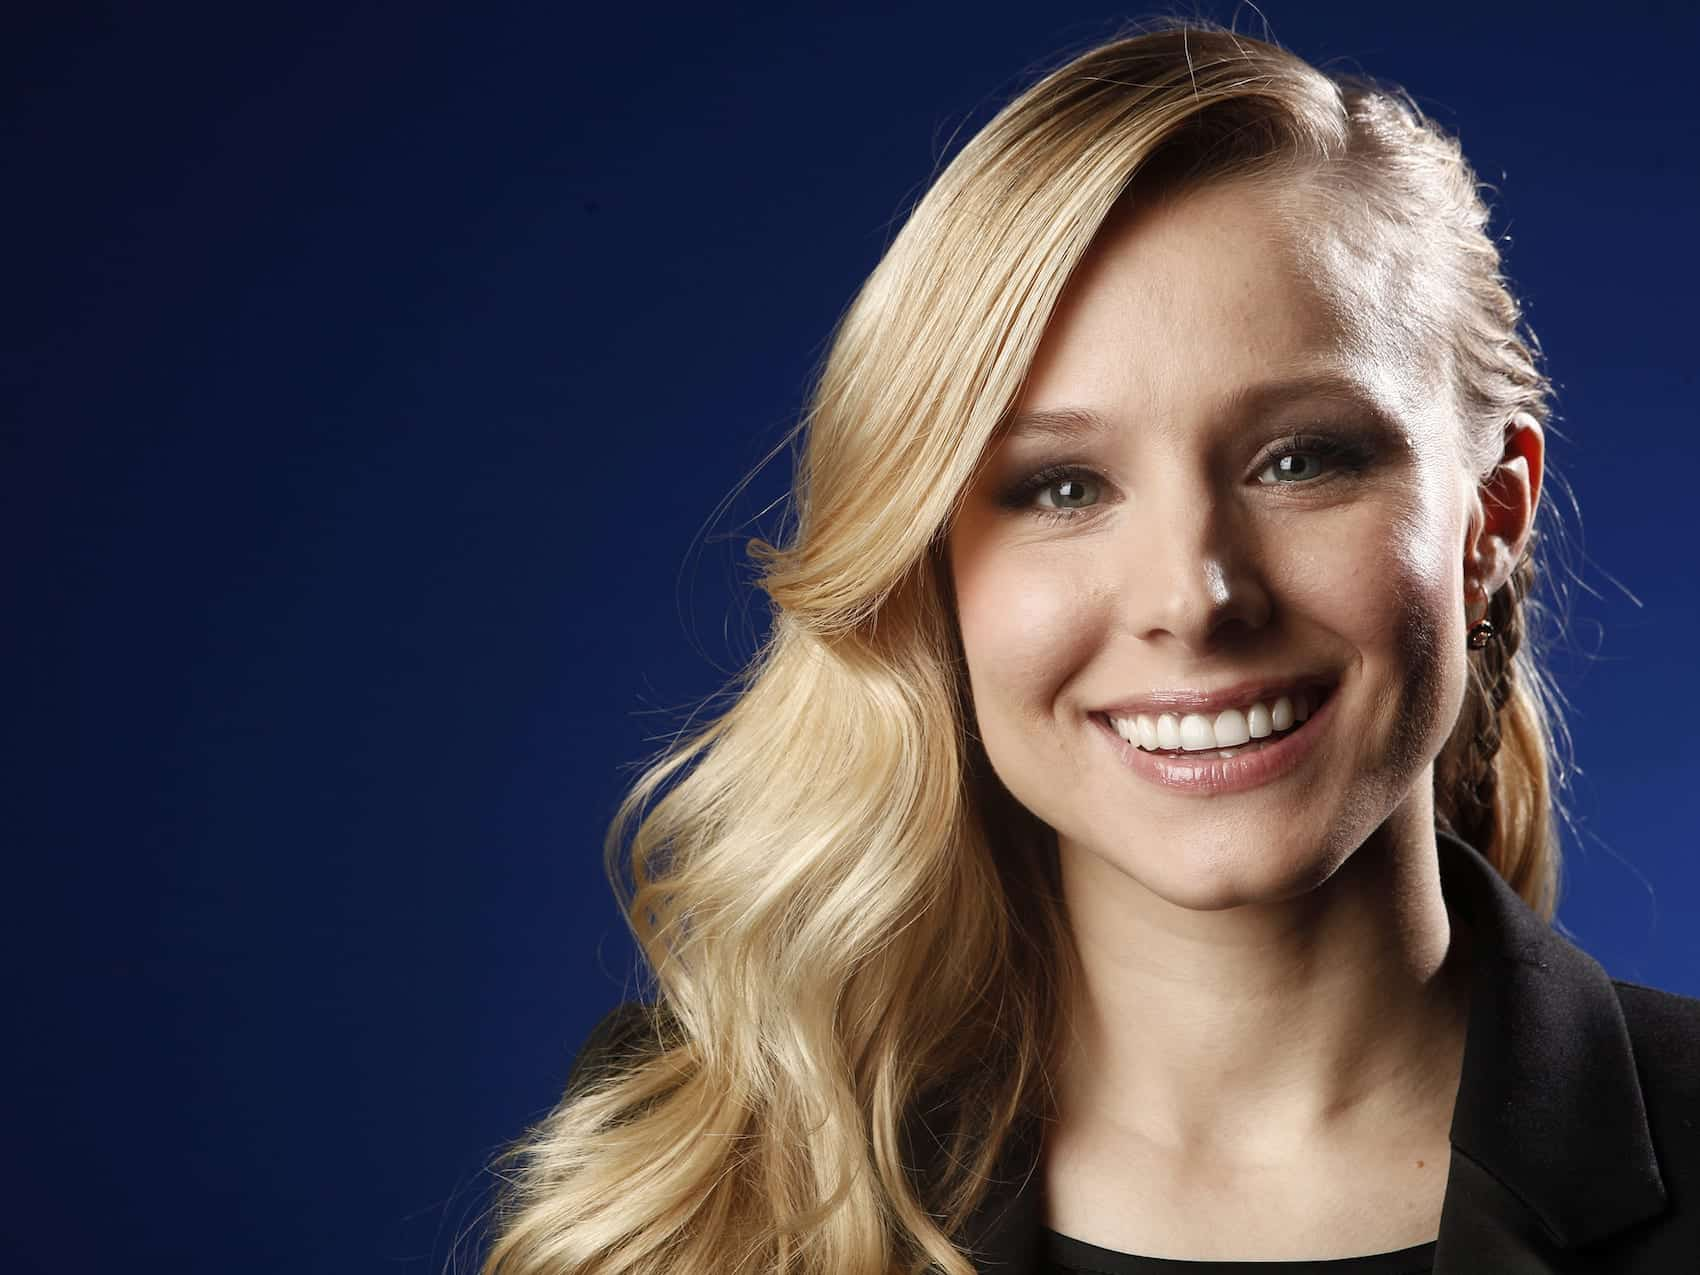 The trailer just dropped for Hulu's'Veronica Mars'reboot and we could not be happier. To celebrate, we've ranked Kristen Bell's most snark-laden roles.